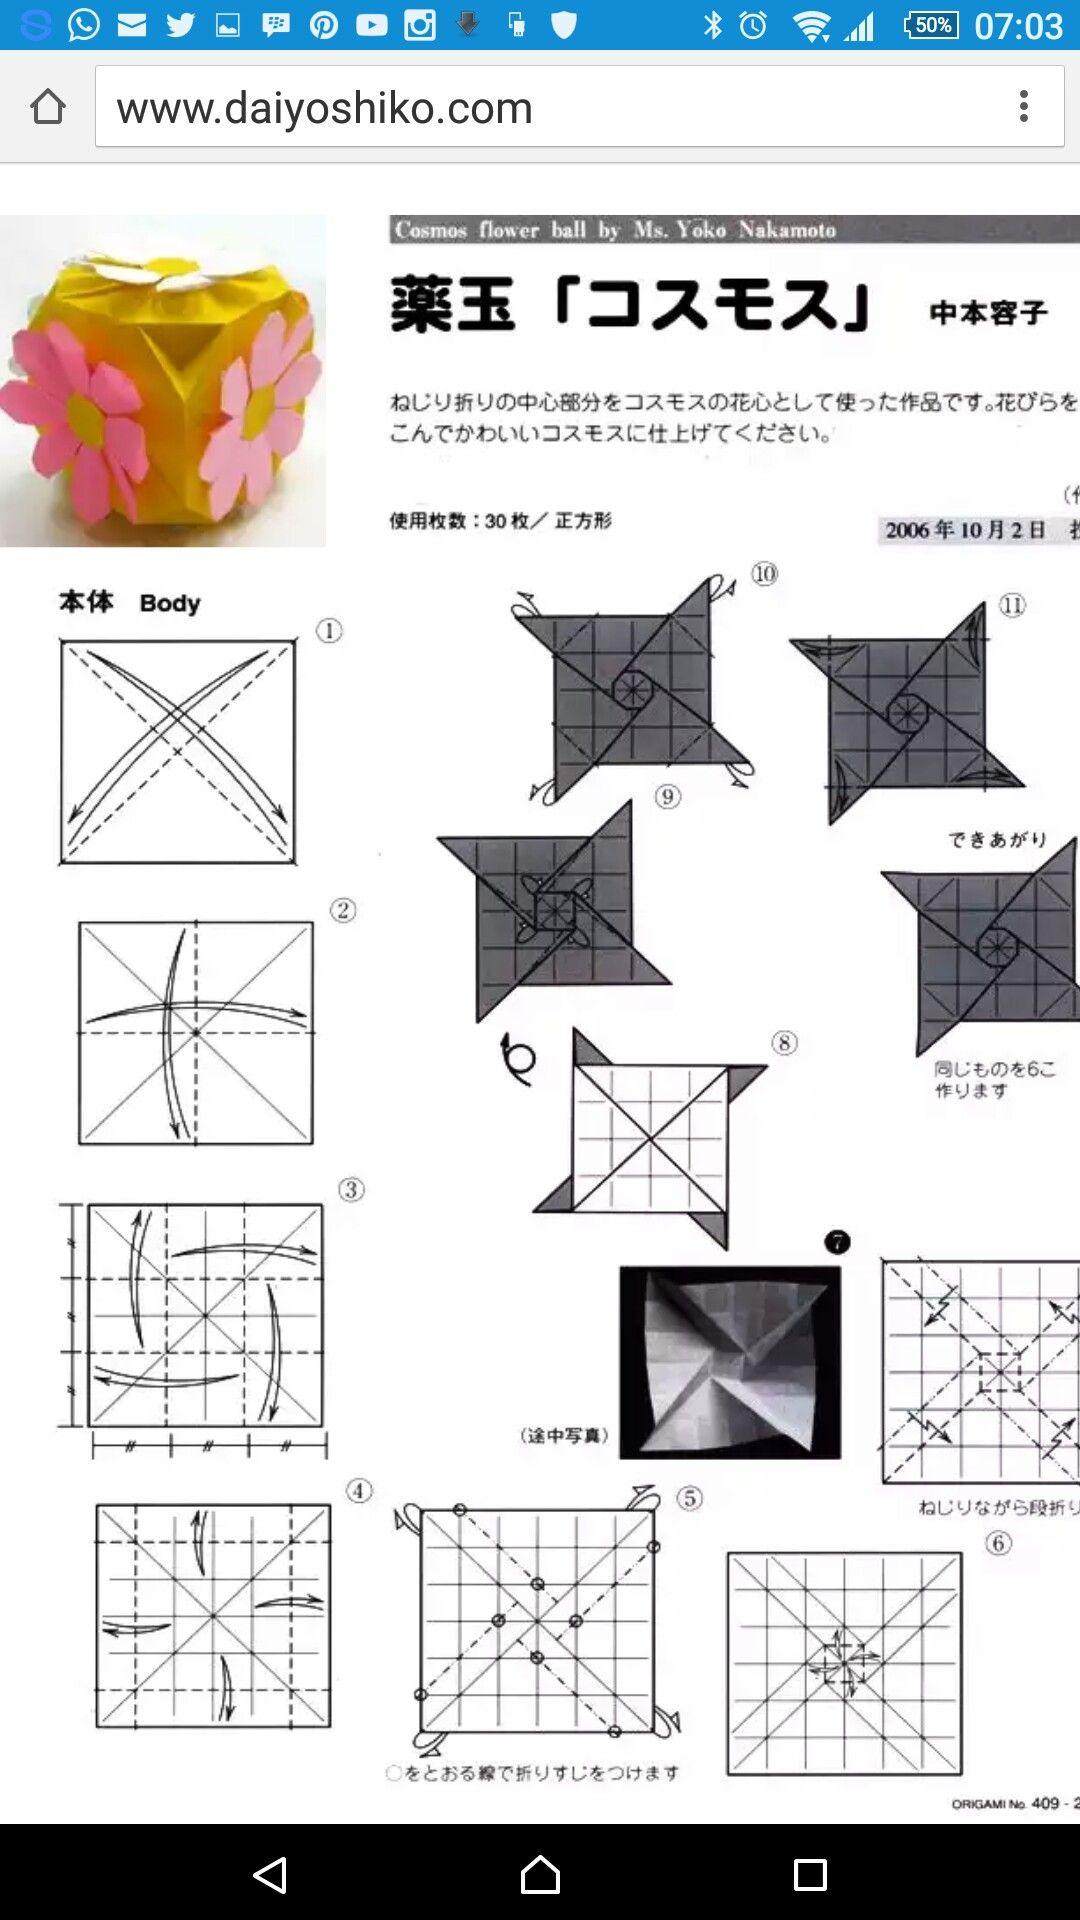 Pin By Zusannas Craft On Modular Origami Pinterest Origami And